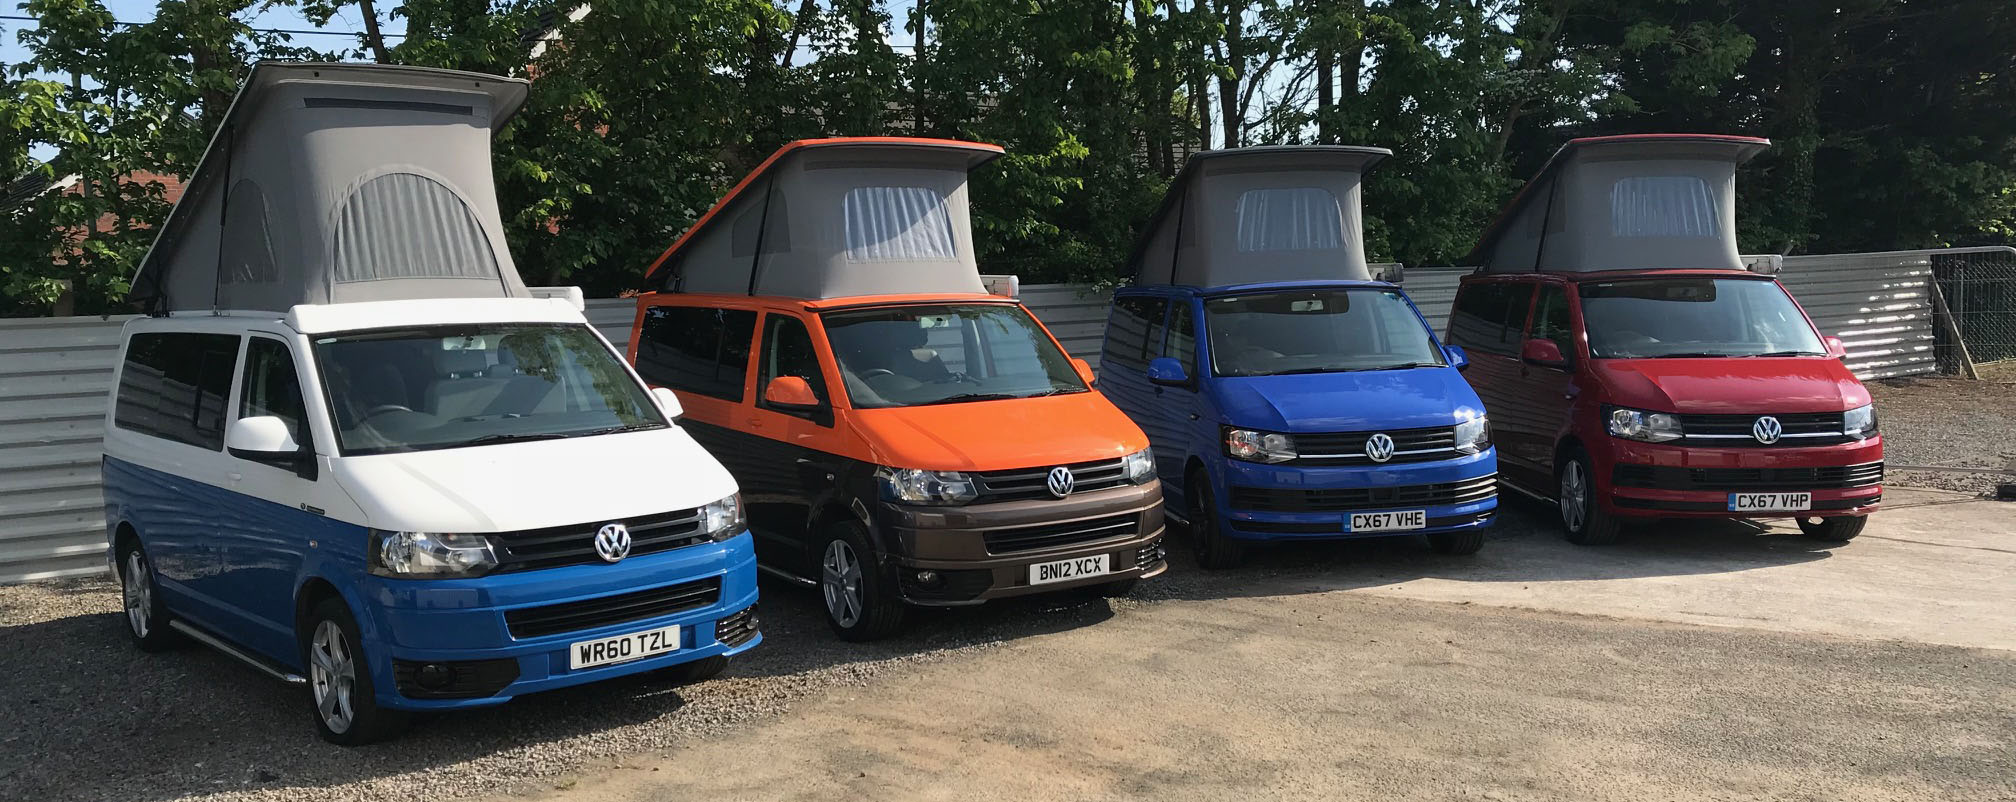 Fleet of VW T6 Carbon Neutral Campervans